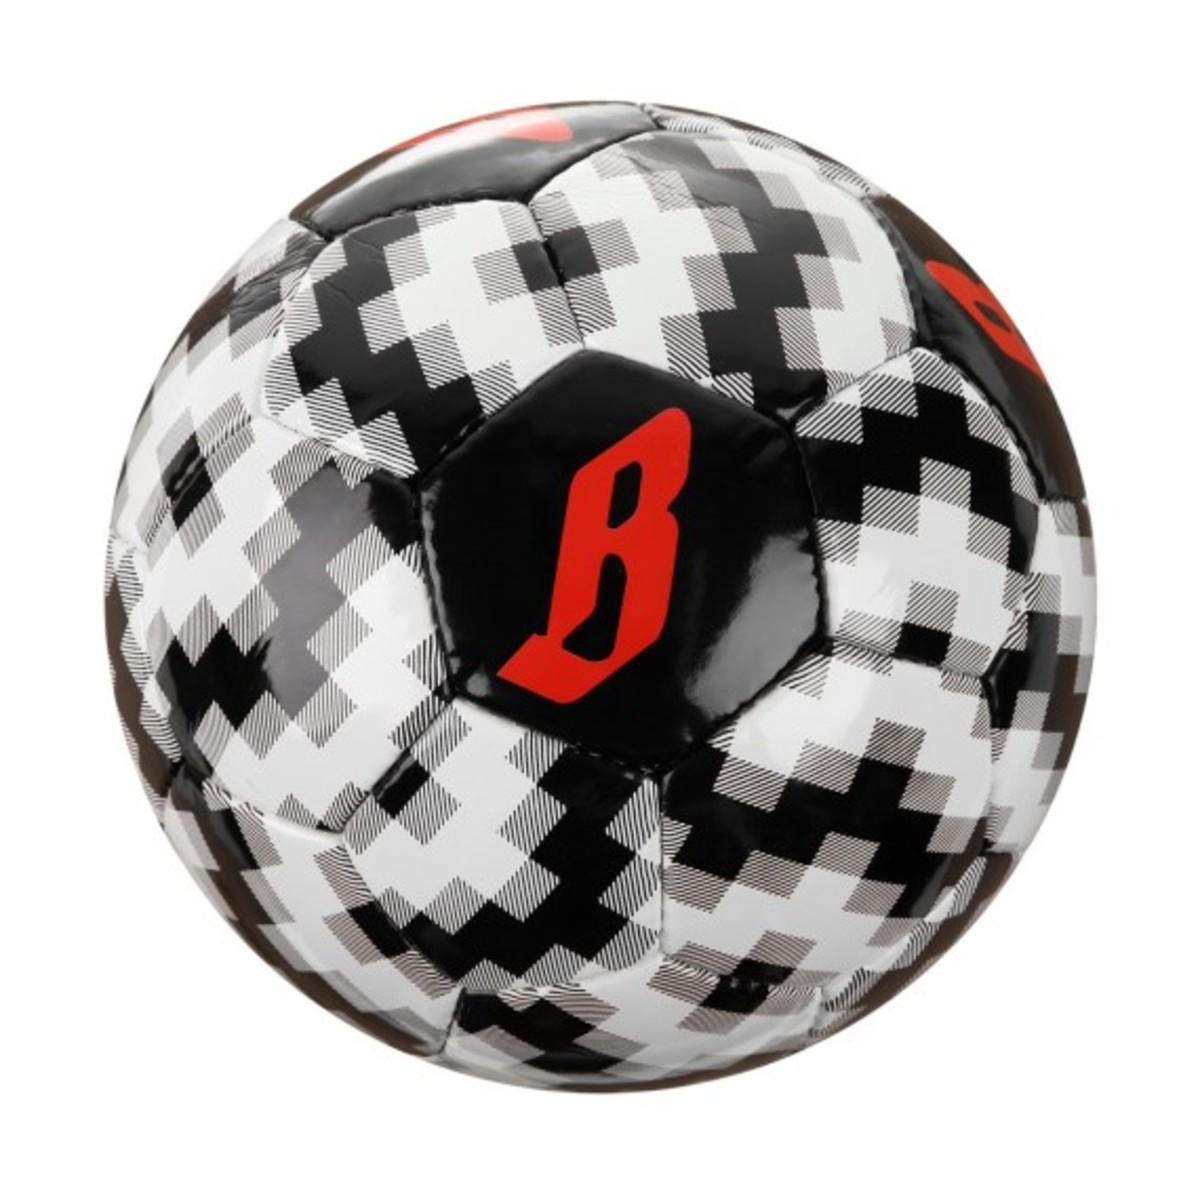 billionaire-boys-club-soccer-ball-04